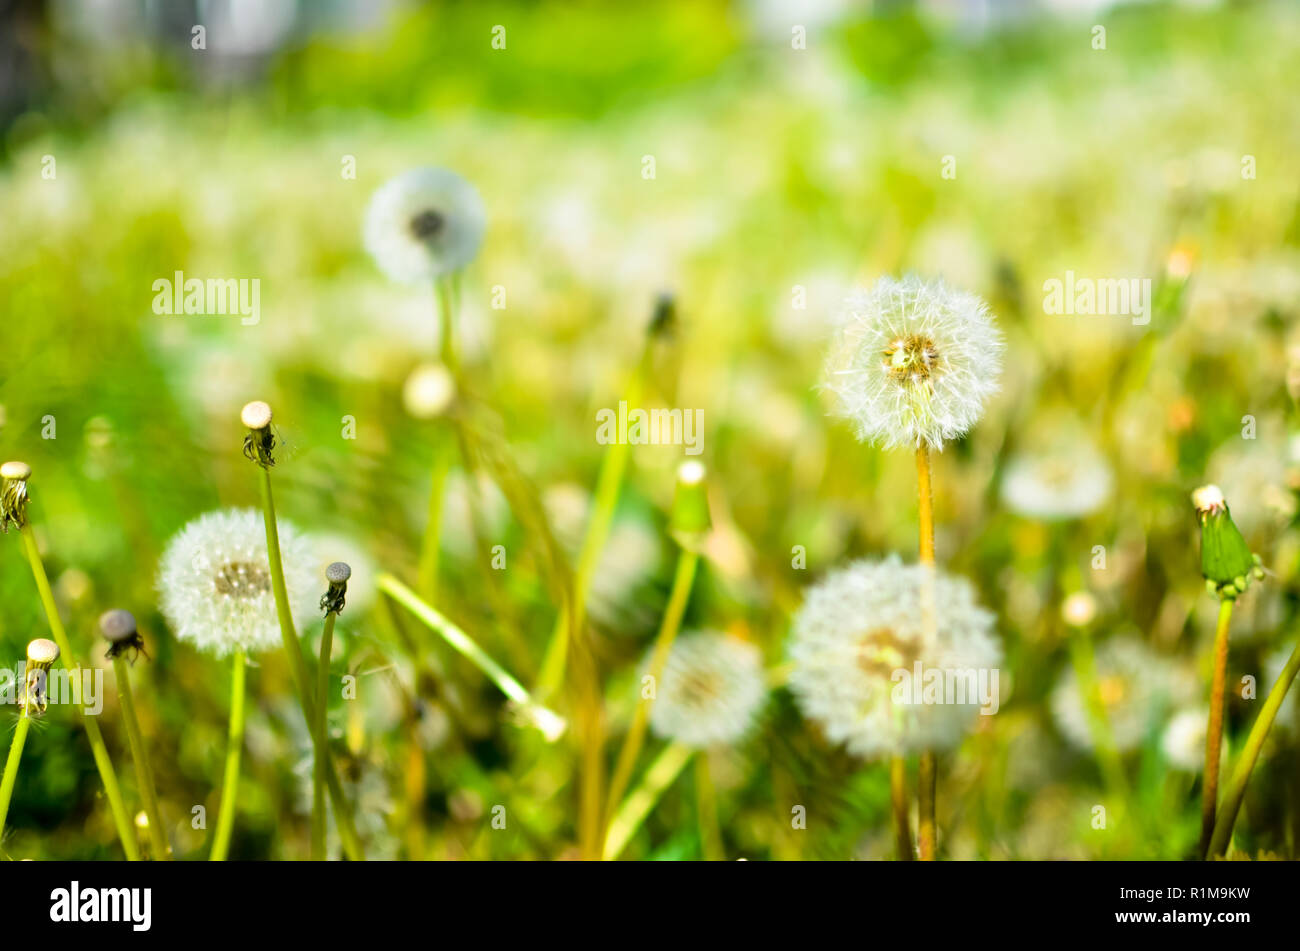 Dandelion seed outdoors closeup in white and green colors - Stock Image